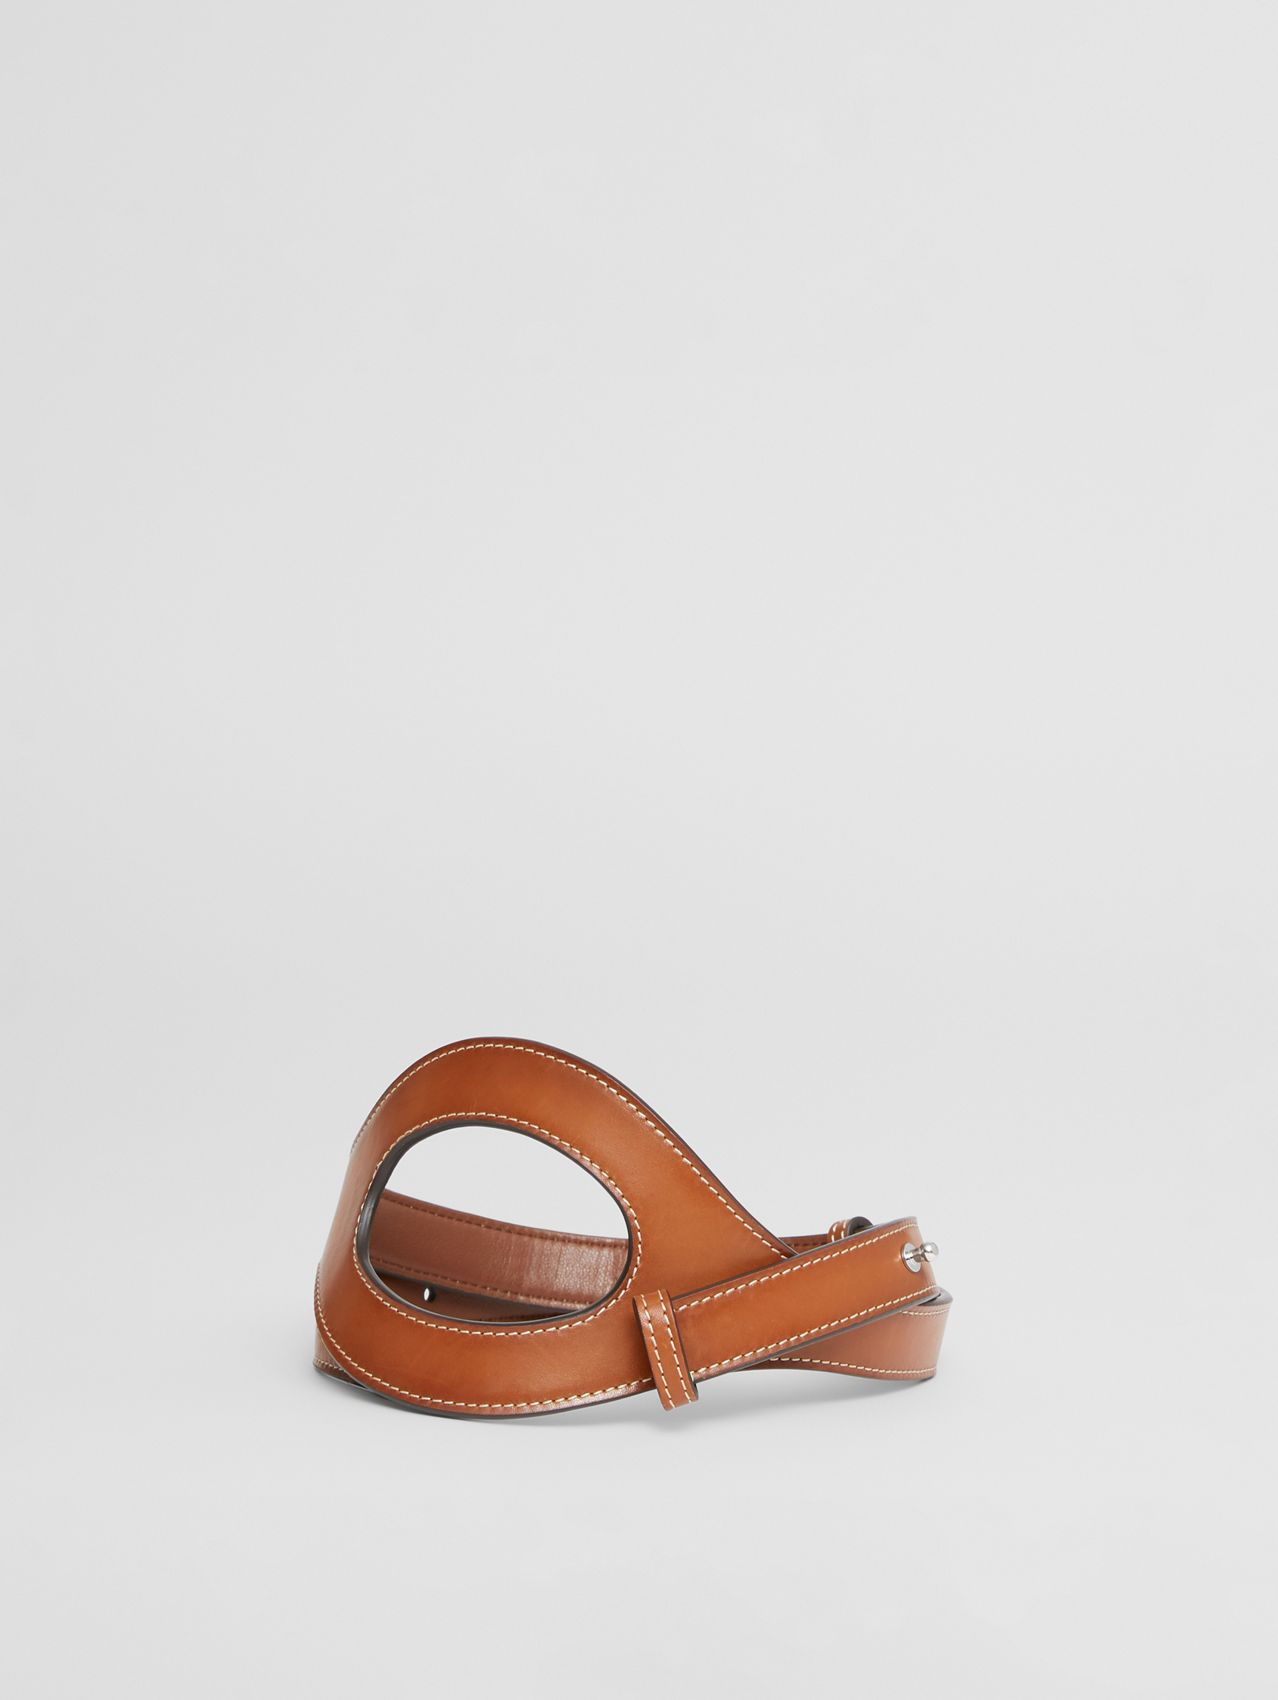 Cut-out Detail Topstitched Leather Belt in Briar Brown